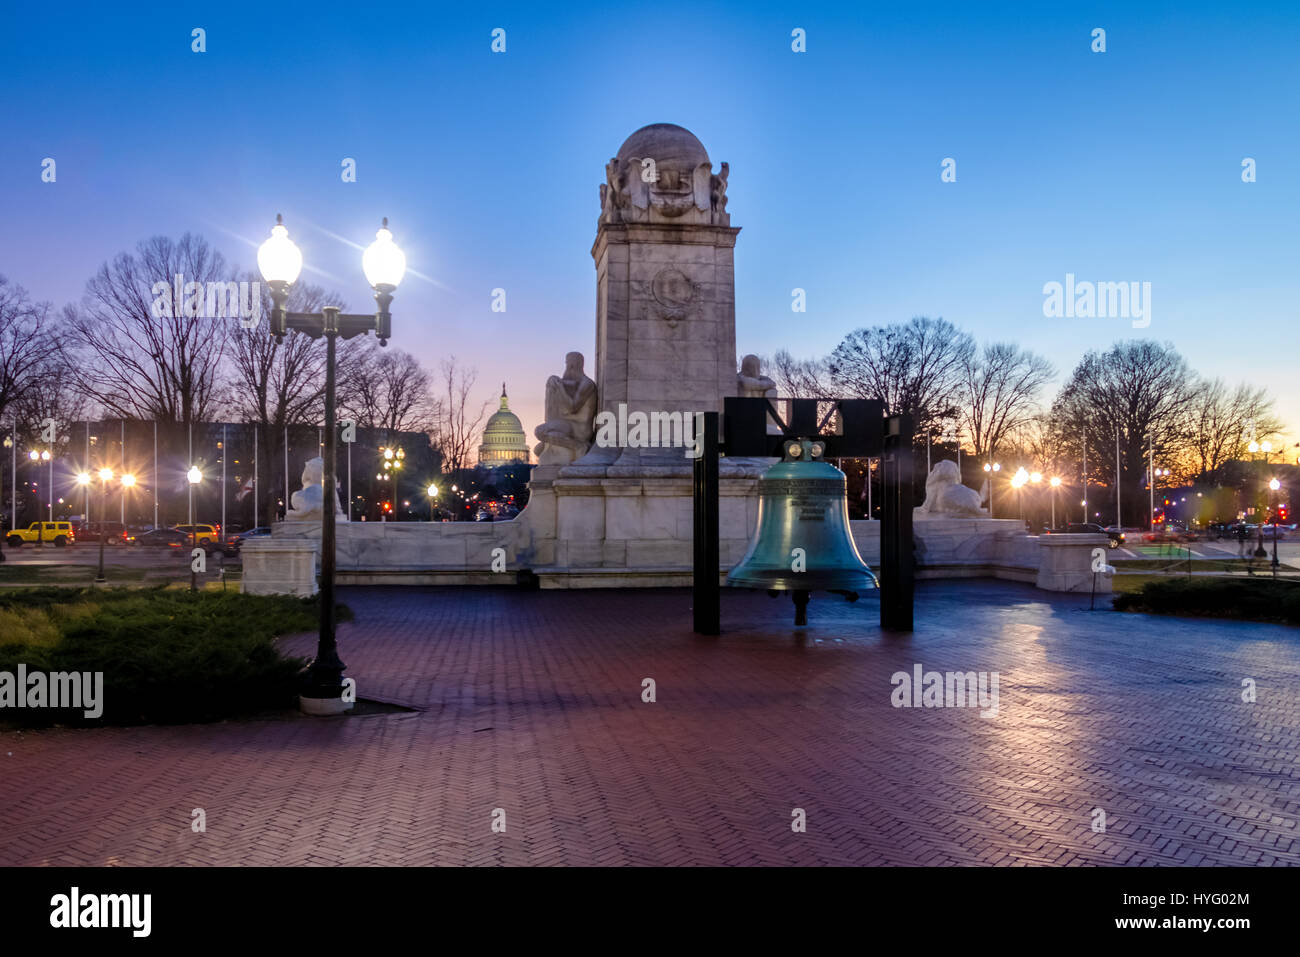 Liberty Bell replica in front of Union Station and Christopher Columbus statue at night - Washington, D.C., USA Stock Photo